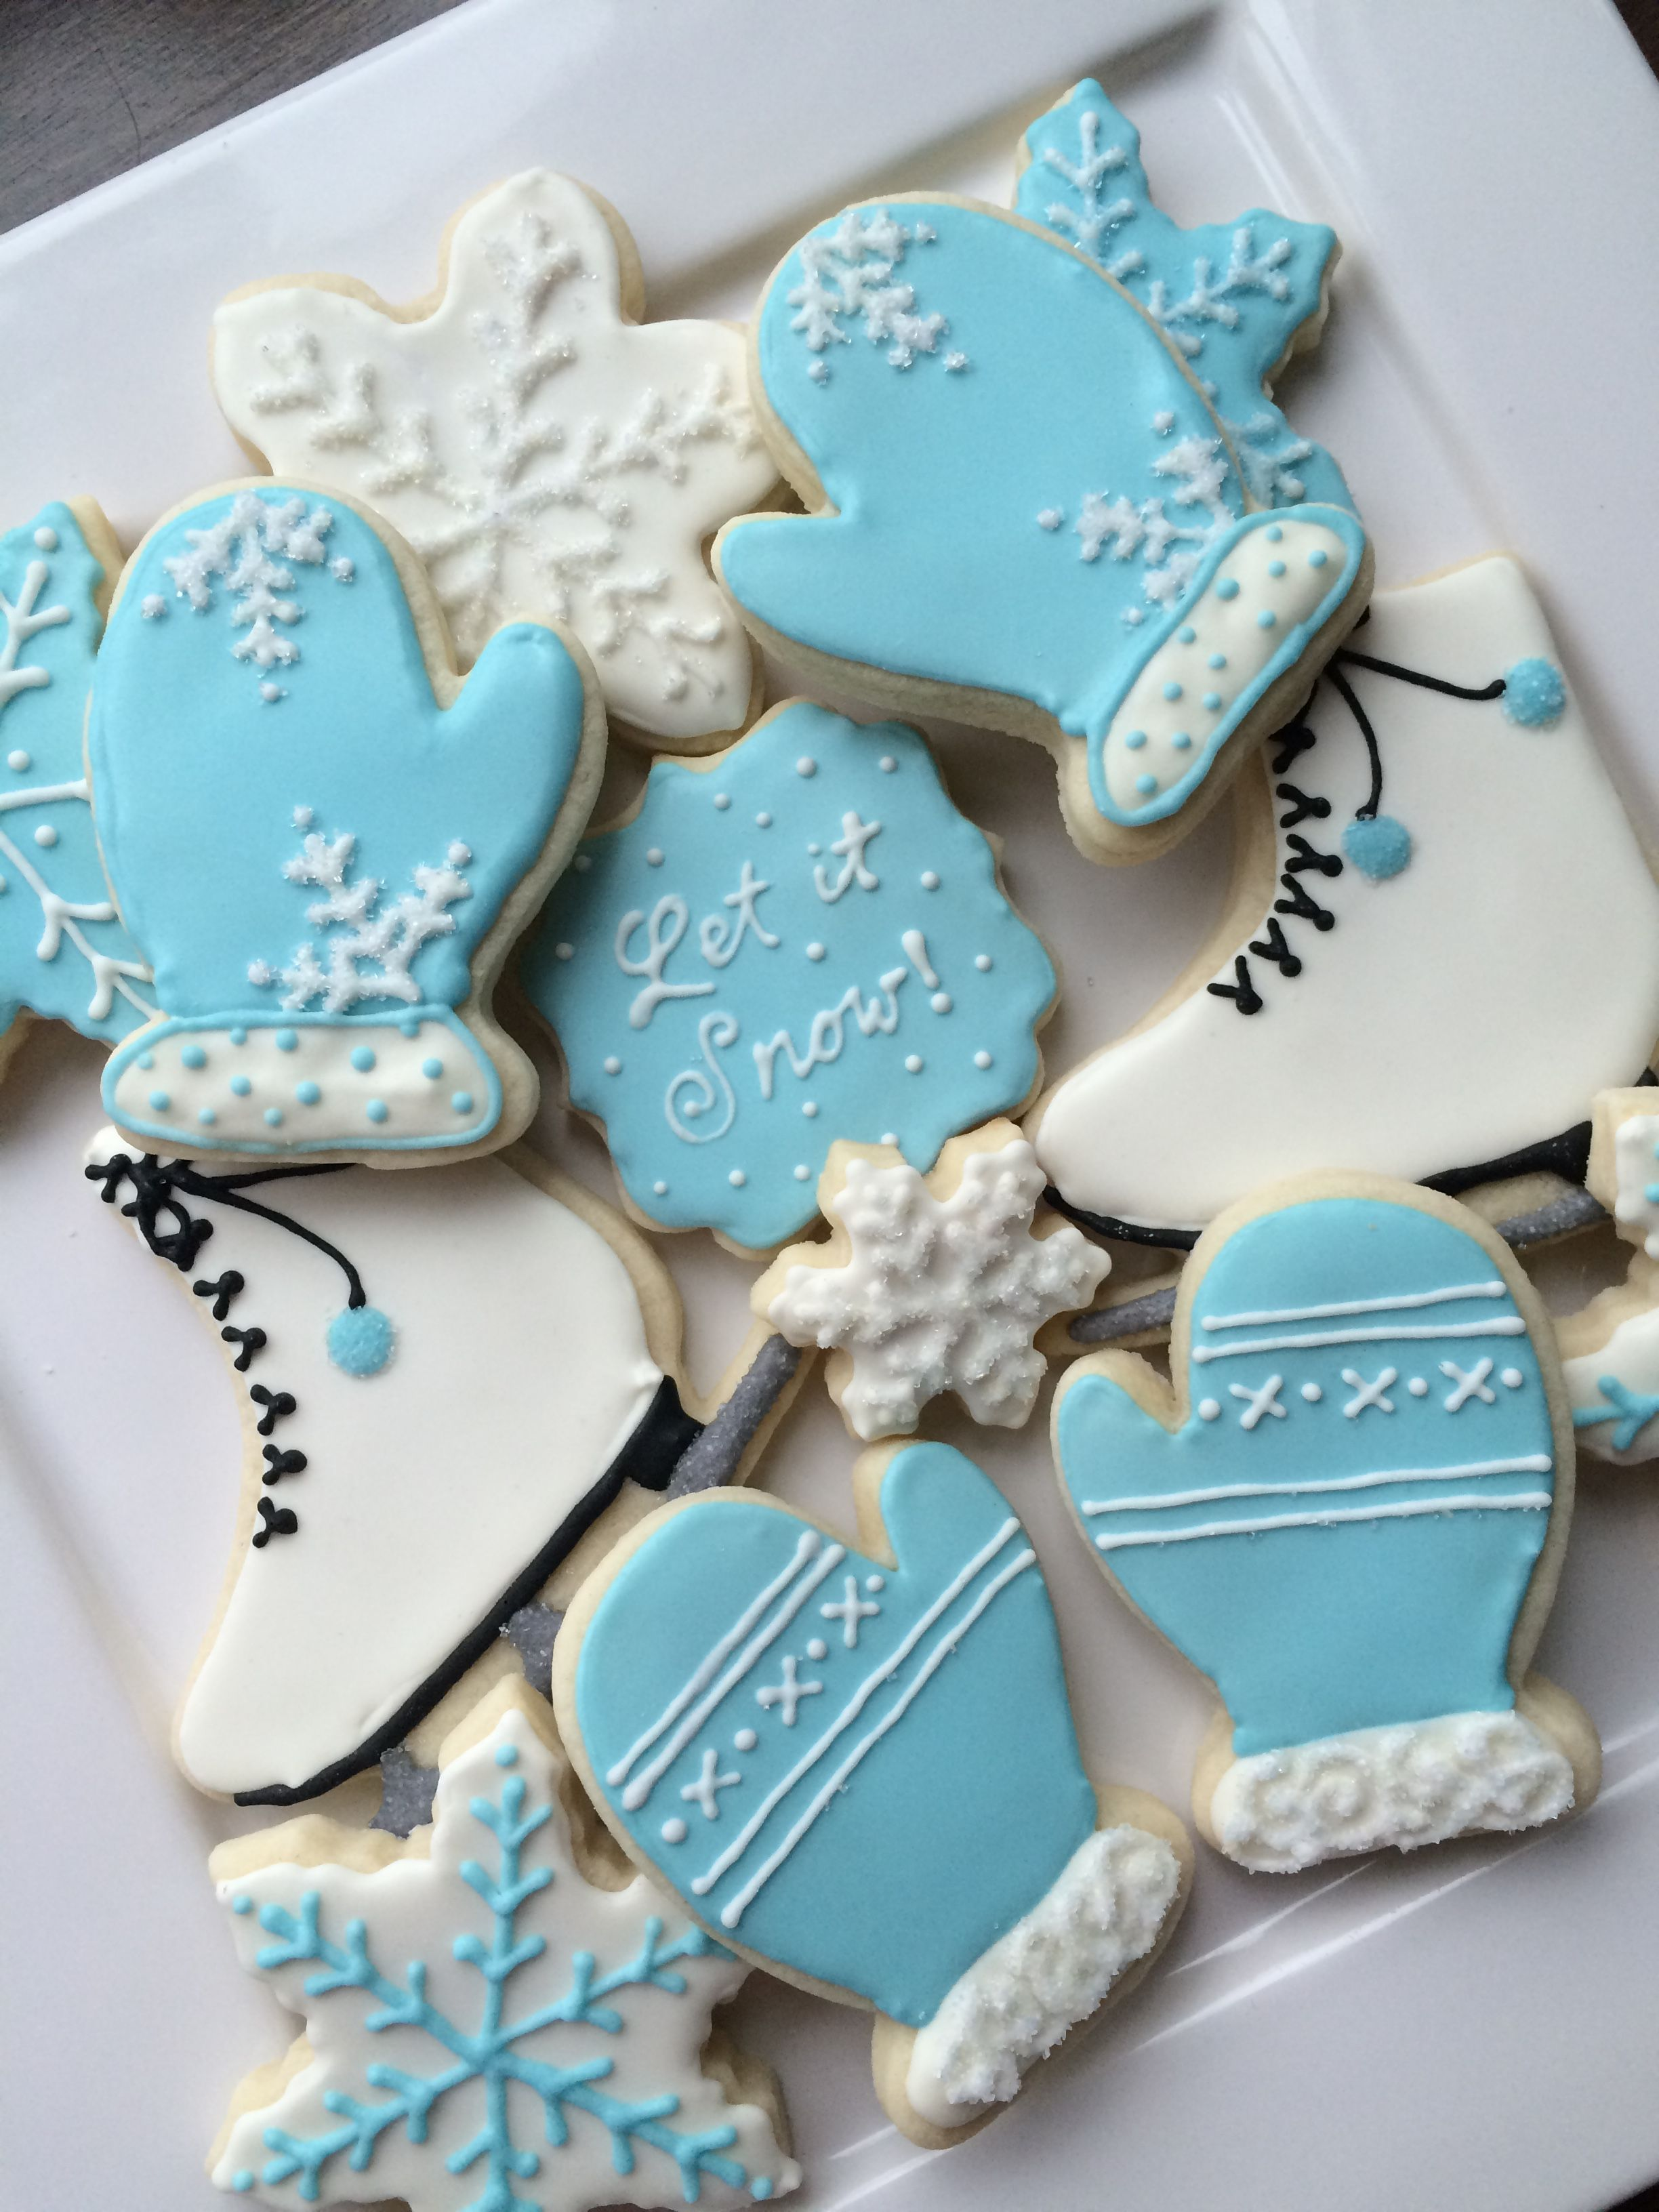 ice skating cookies snowflakes mittens decorated cookies. Black Bedroom Furniture Sets. Home Design Ideas